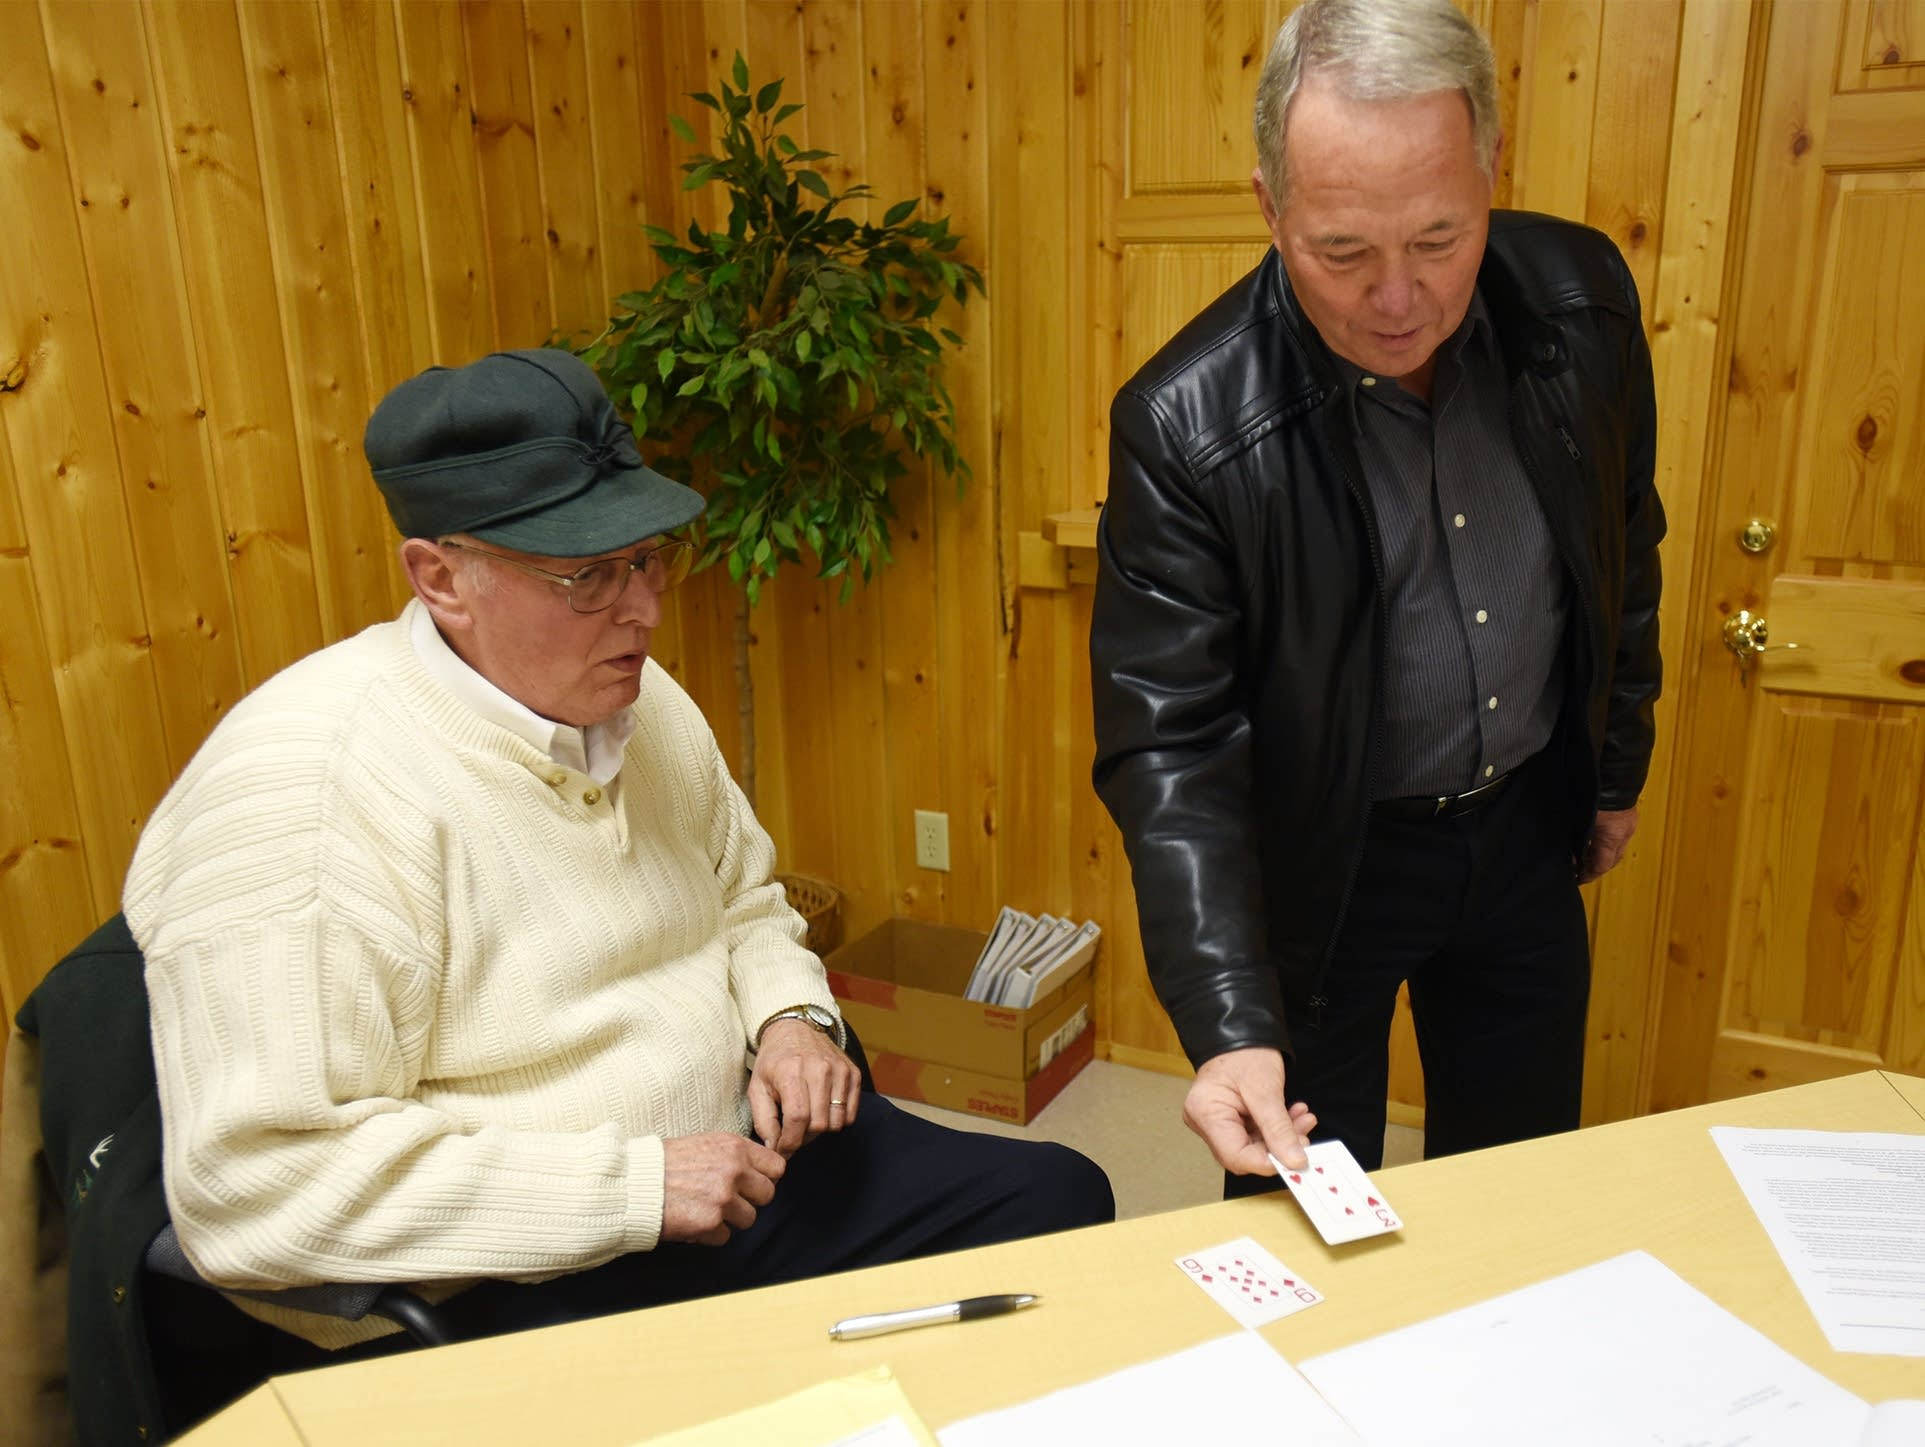 Larson laid down his card next to incumbent mayor Allen's winning card.